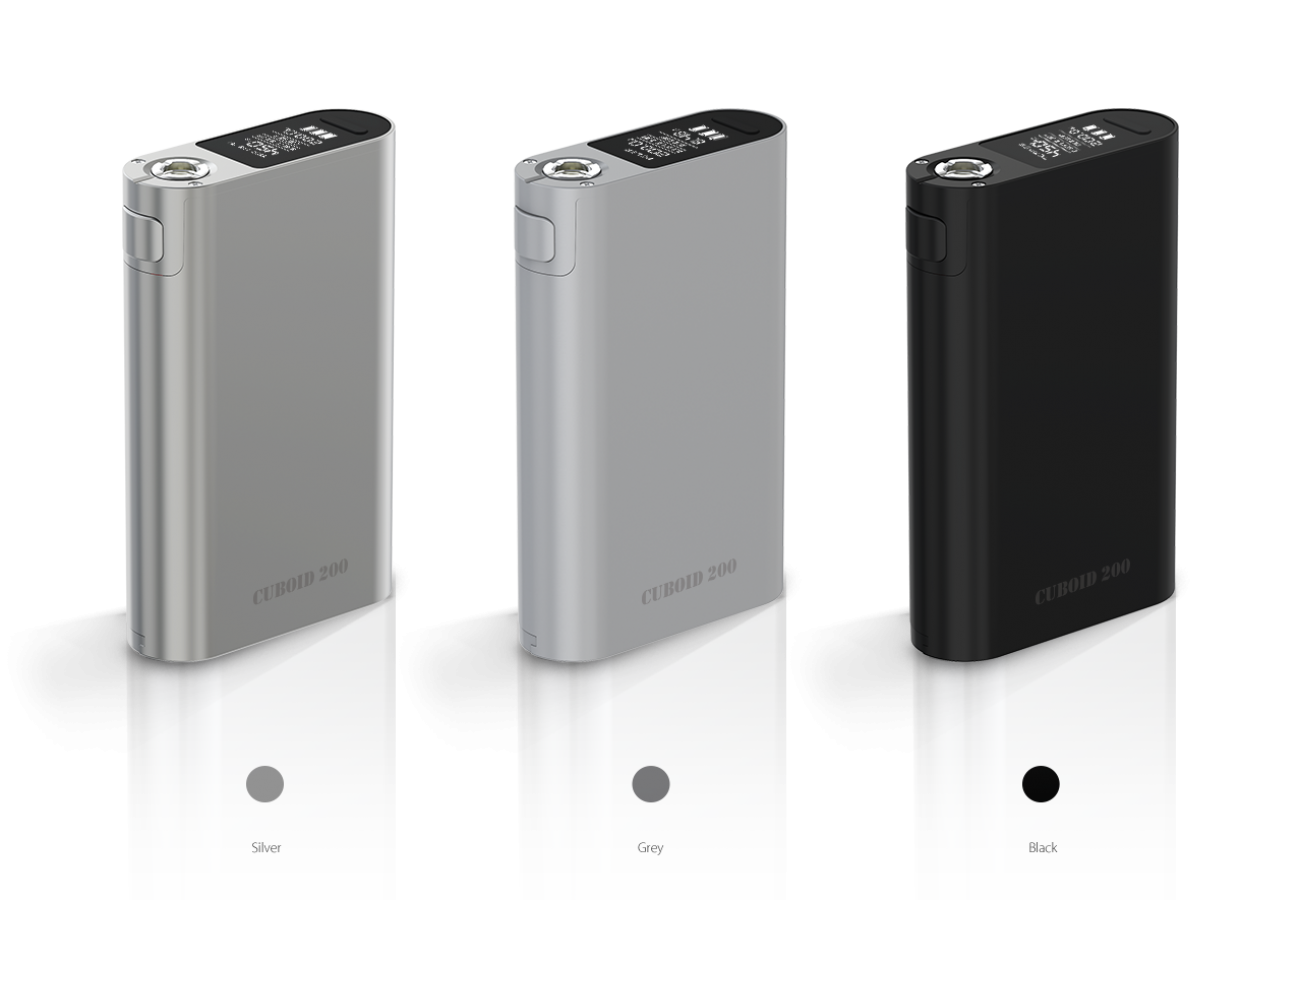 Cuboid 200w Battery Kit Joyetech